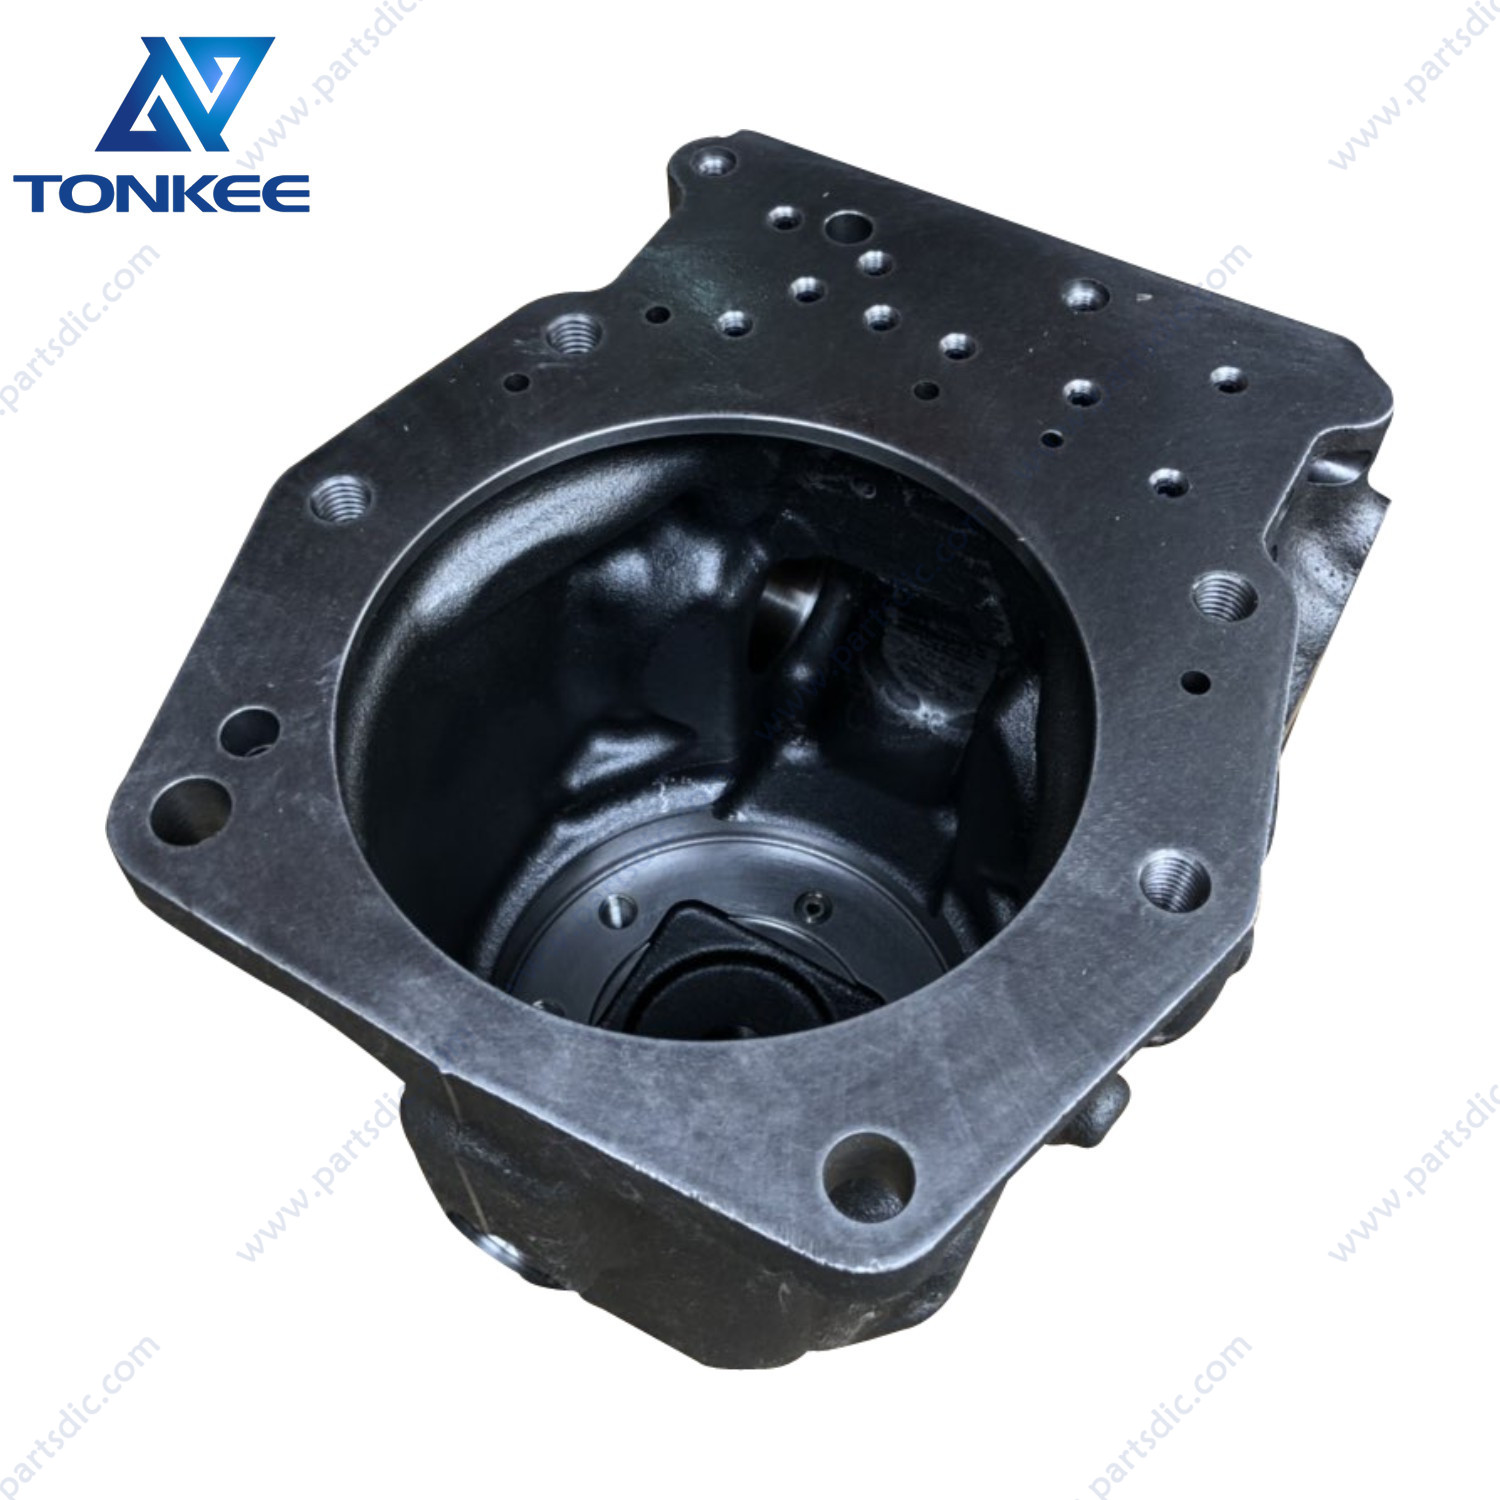 genuine new PC200-7 PC230-7 PC220LC-7 excavator main pump case rear 708-2L-06211 708-2L-31160 708-2L-06740 hydraulic pump case rear